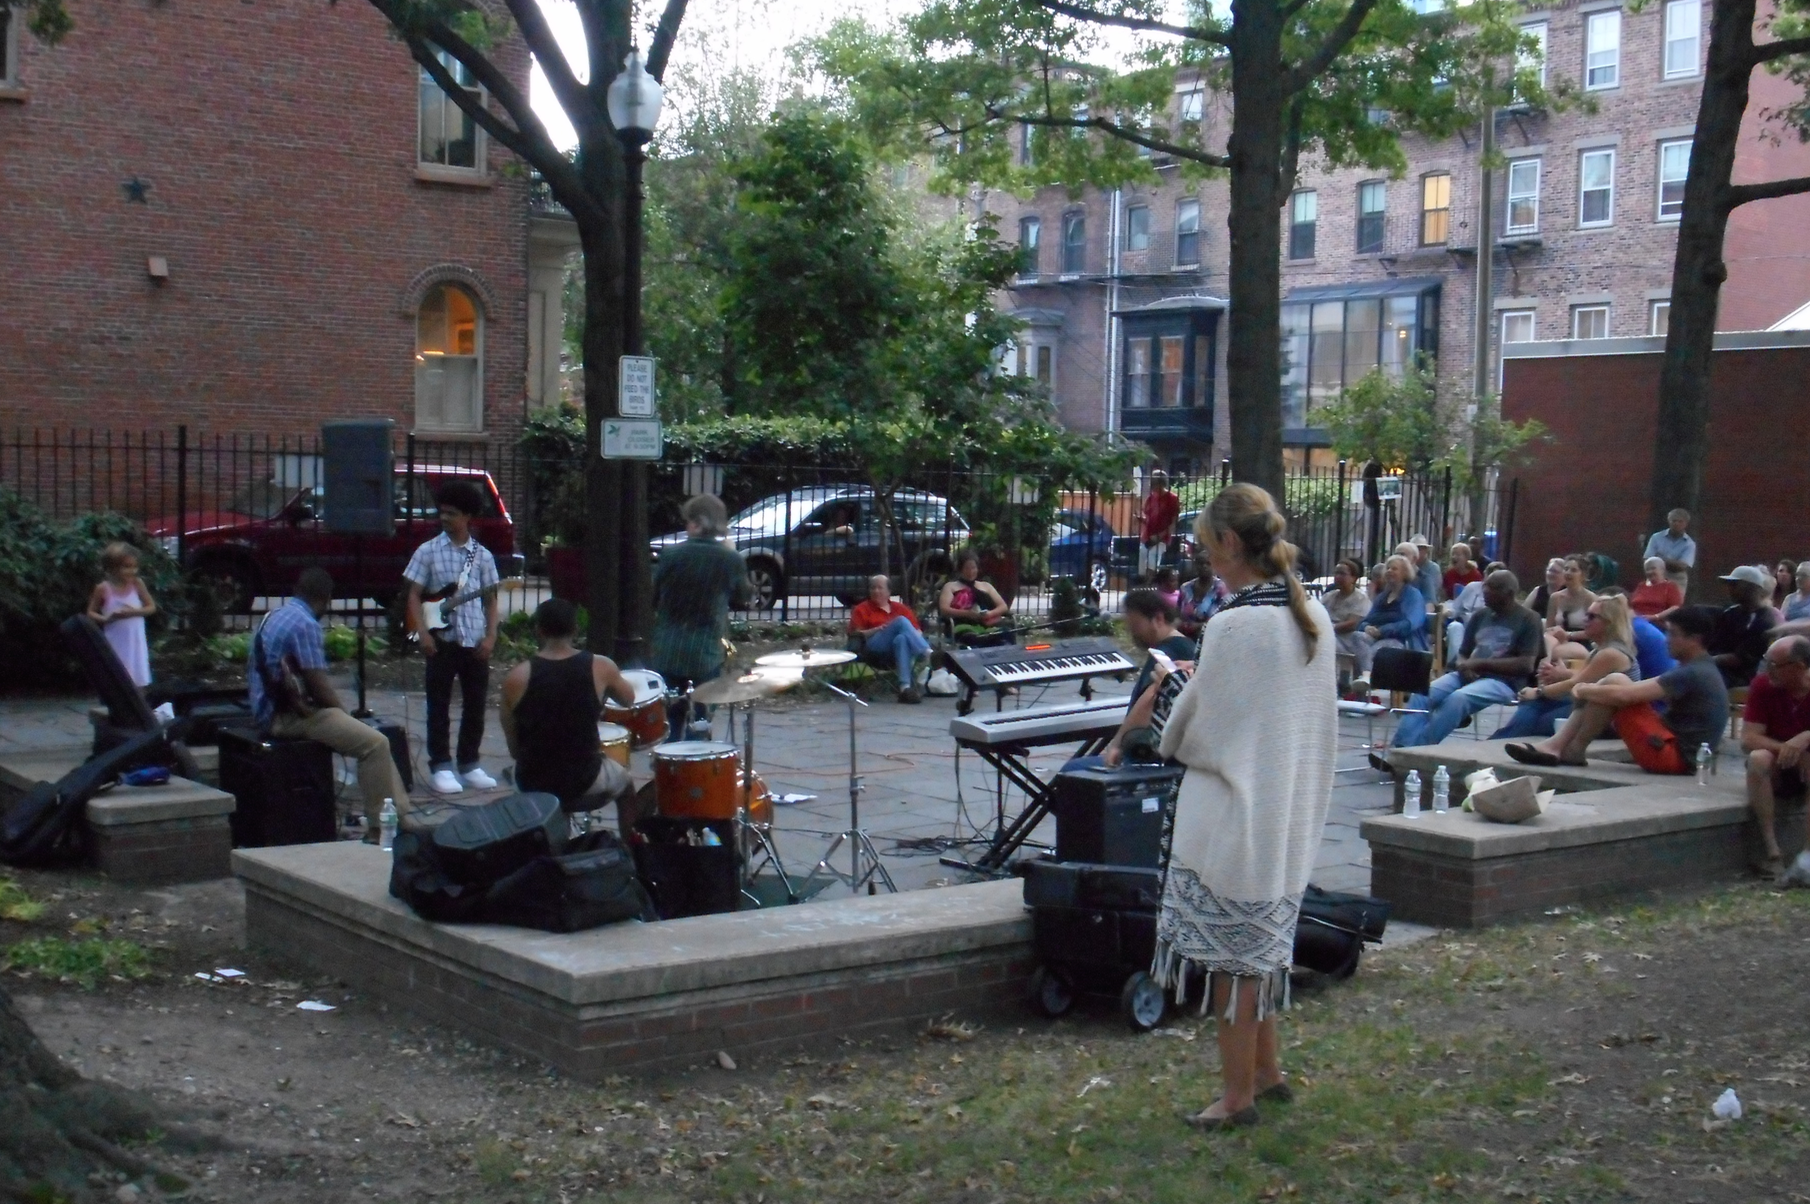 August 18, 2015 with Pat Loomis in Library Park